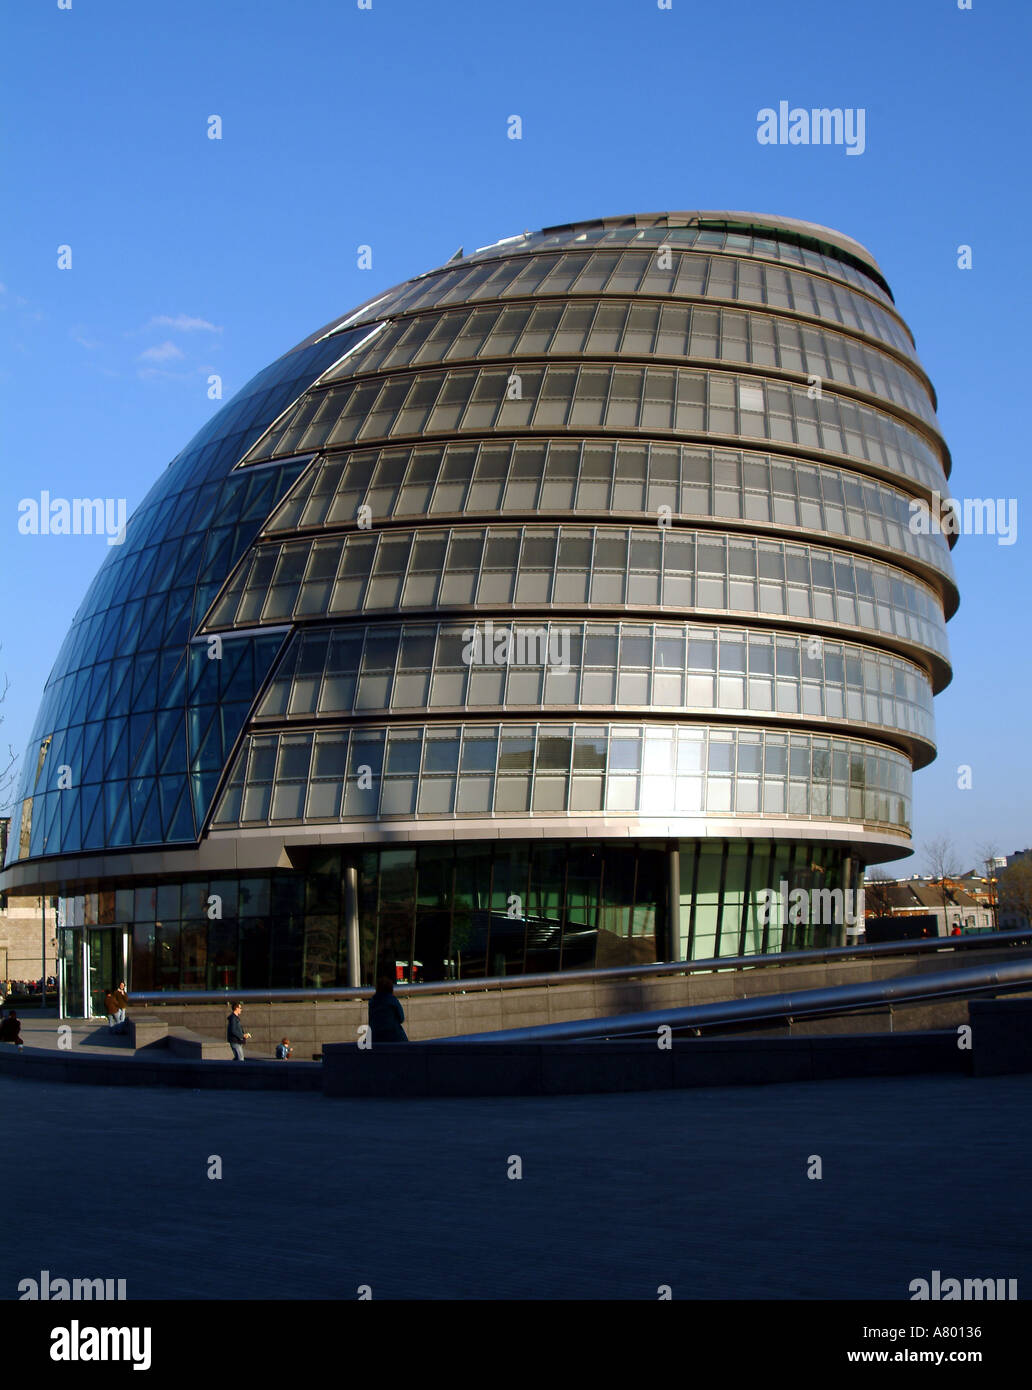 england london the london assembly building site of the london authority parliament alongside river thames - Stock Image